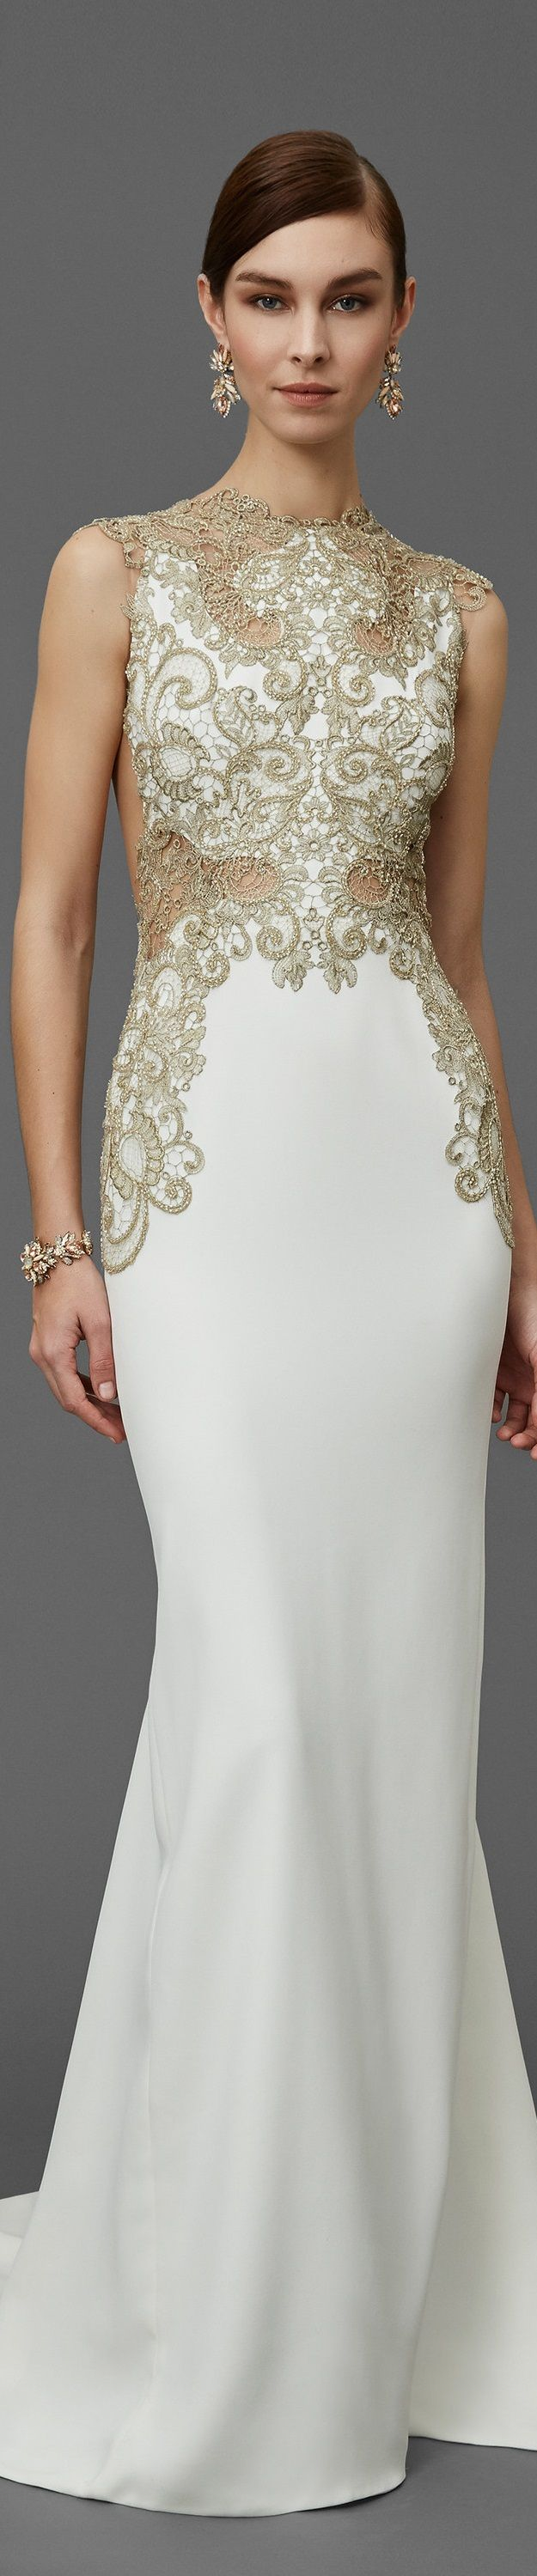 Marchesa Pre Fall 2016 white maxi dress women fashion outfit clothing style apparel @roressclothes closet ideas